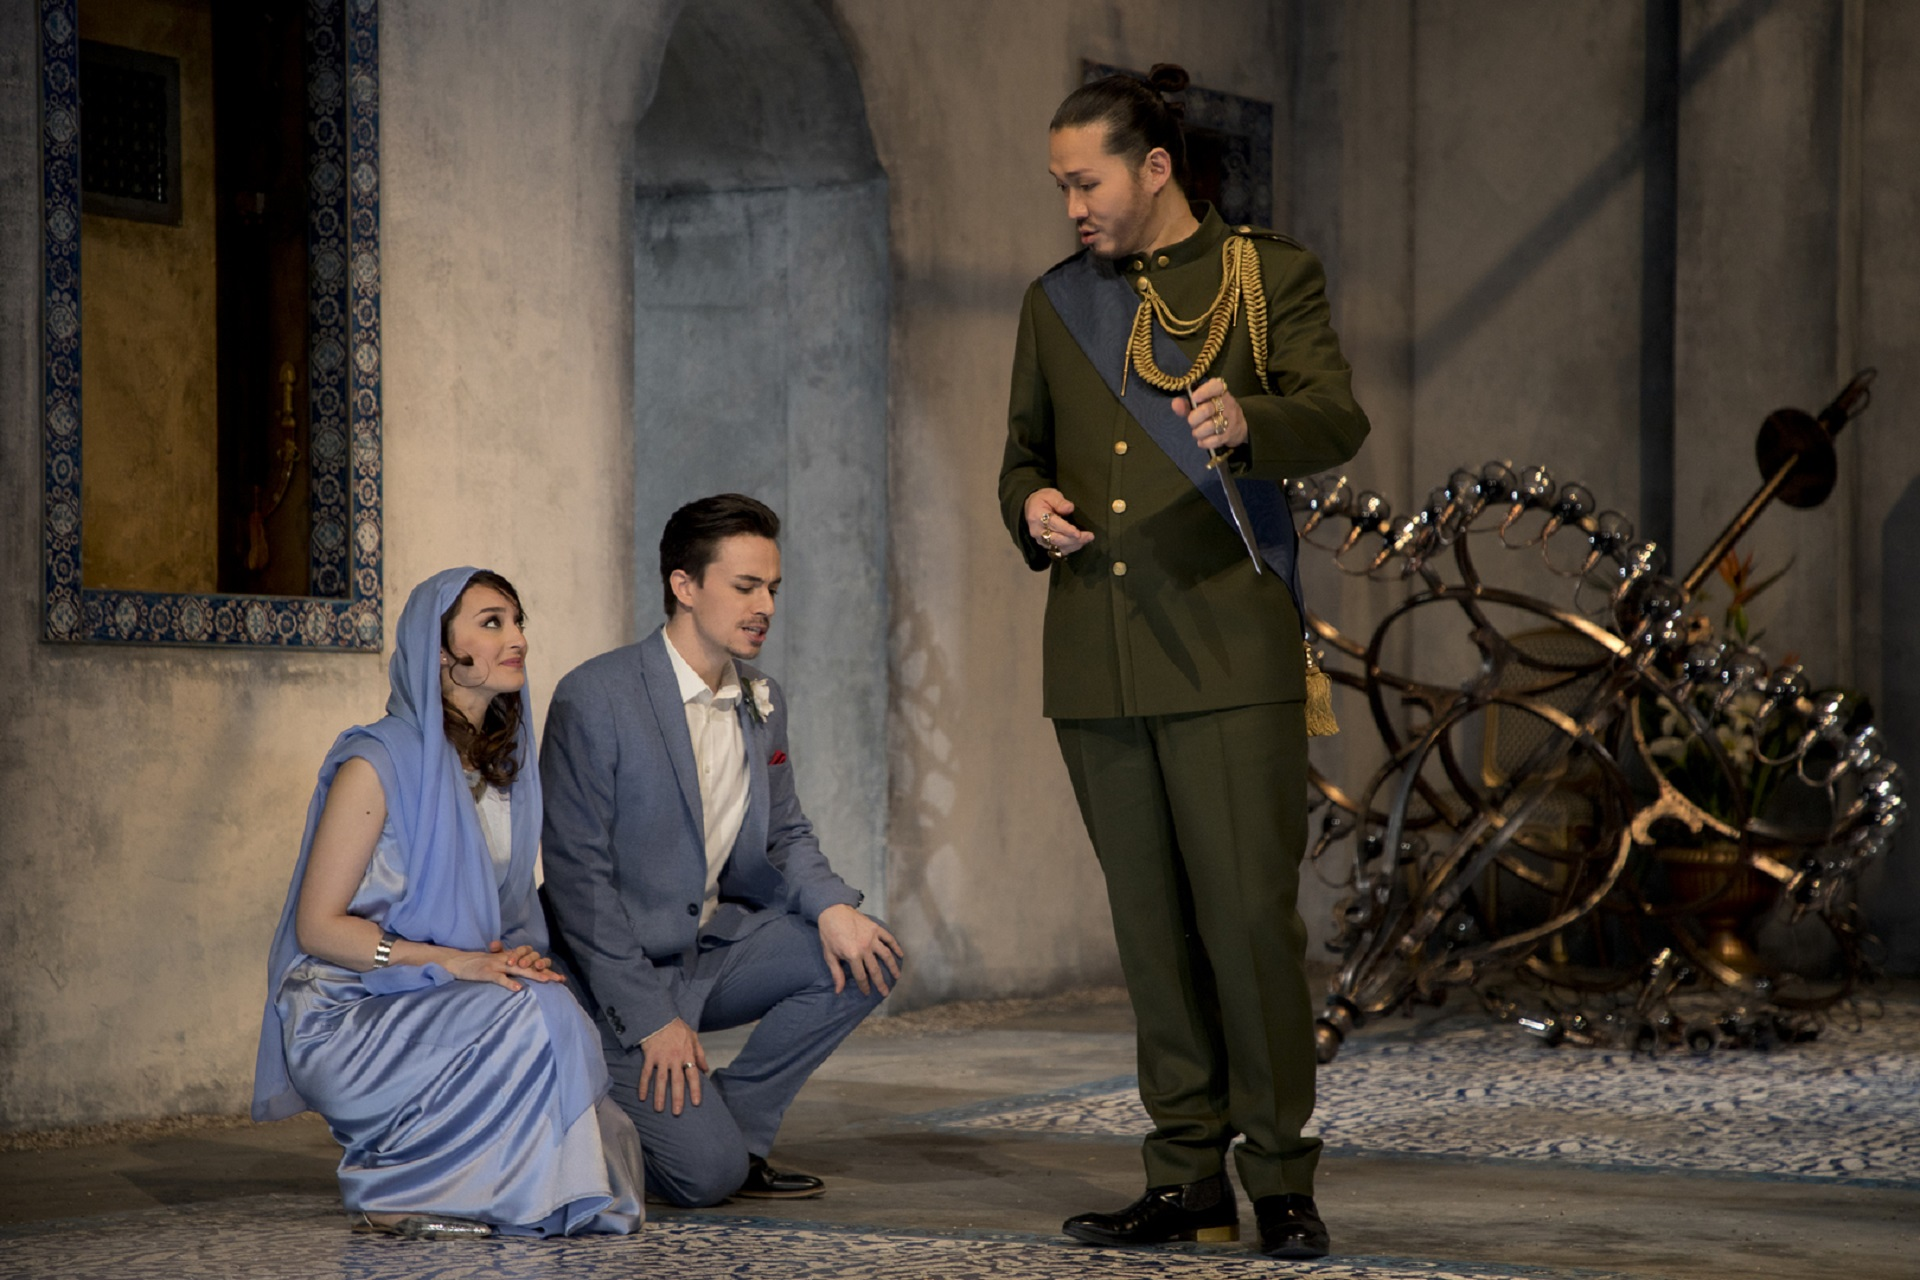 Mitridate-Opera-by-Porpora-Stage-Director-Jacopo-Spirei-3